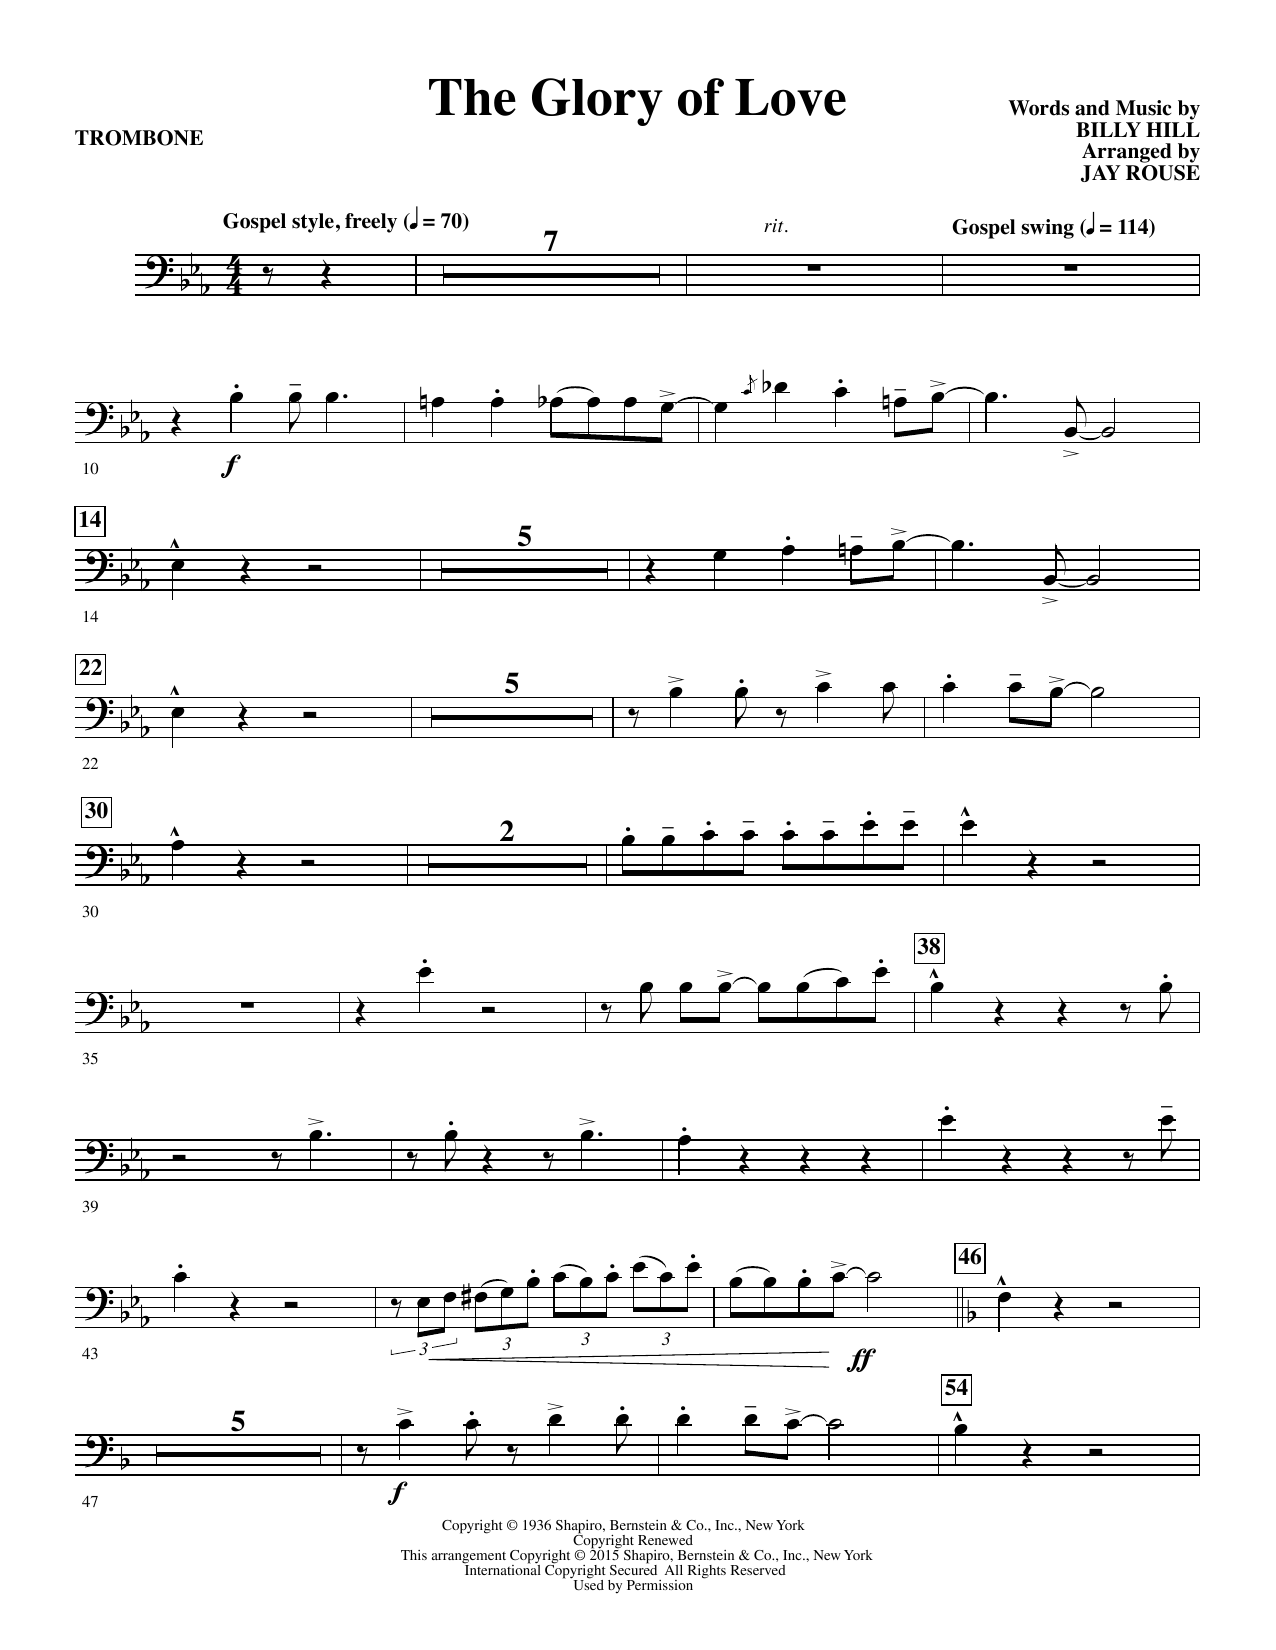 Jay Rouse The Glory of Love - Trombone sheet music notes and chords. Download Printable PDF.